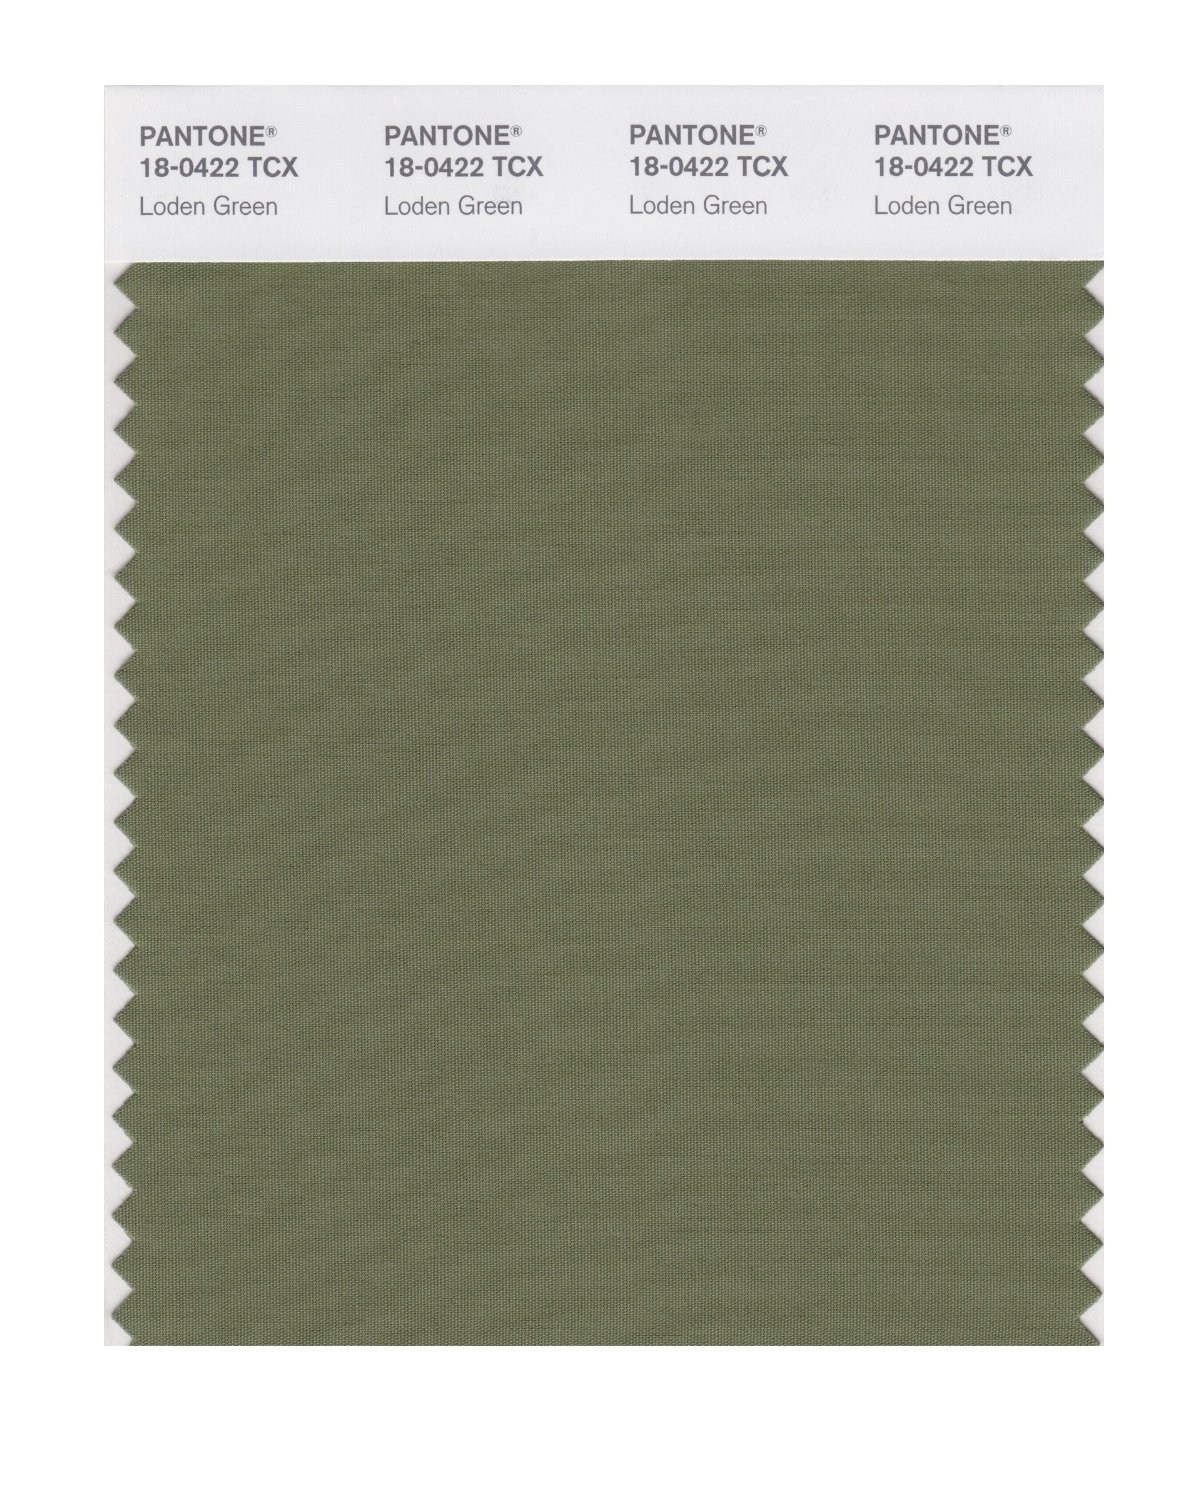 Pantone Smart Swatch 18-0422 Loden Green